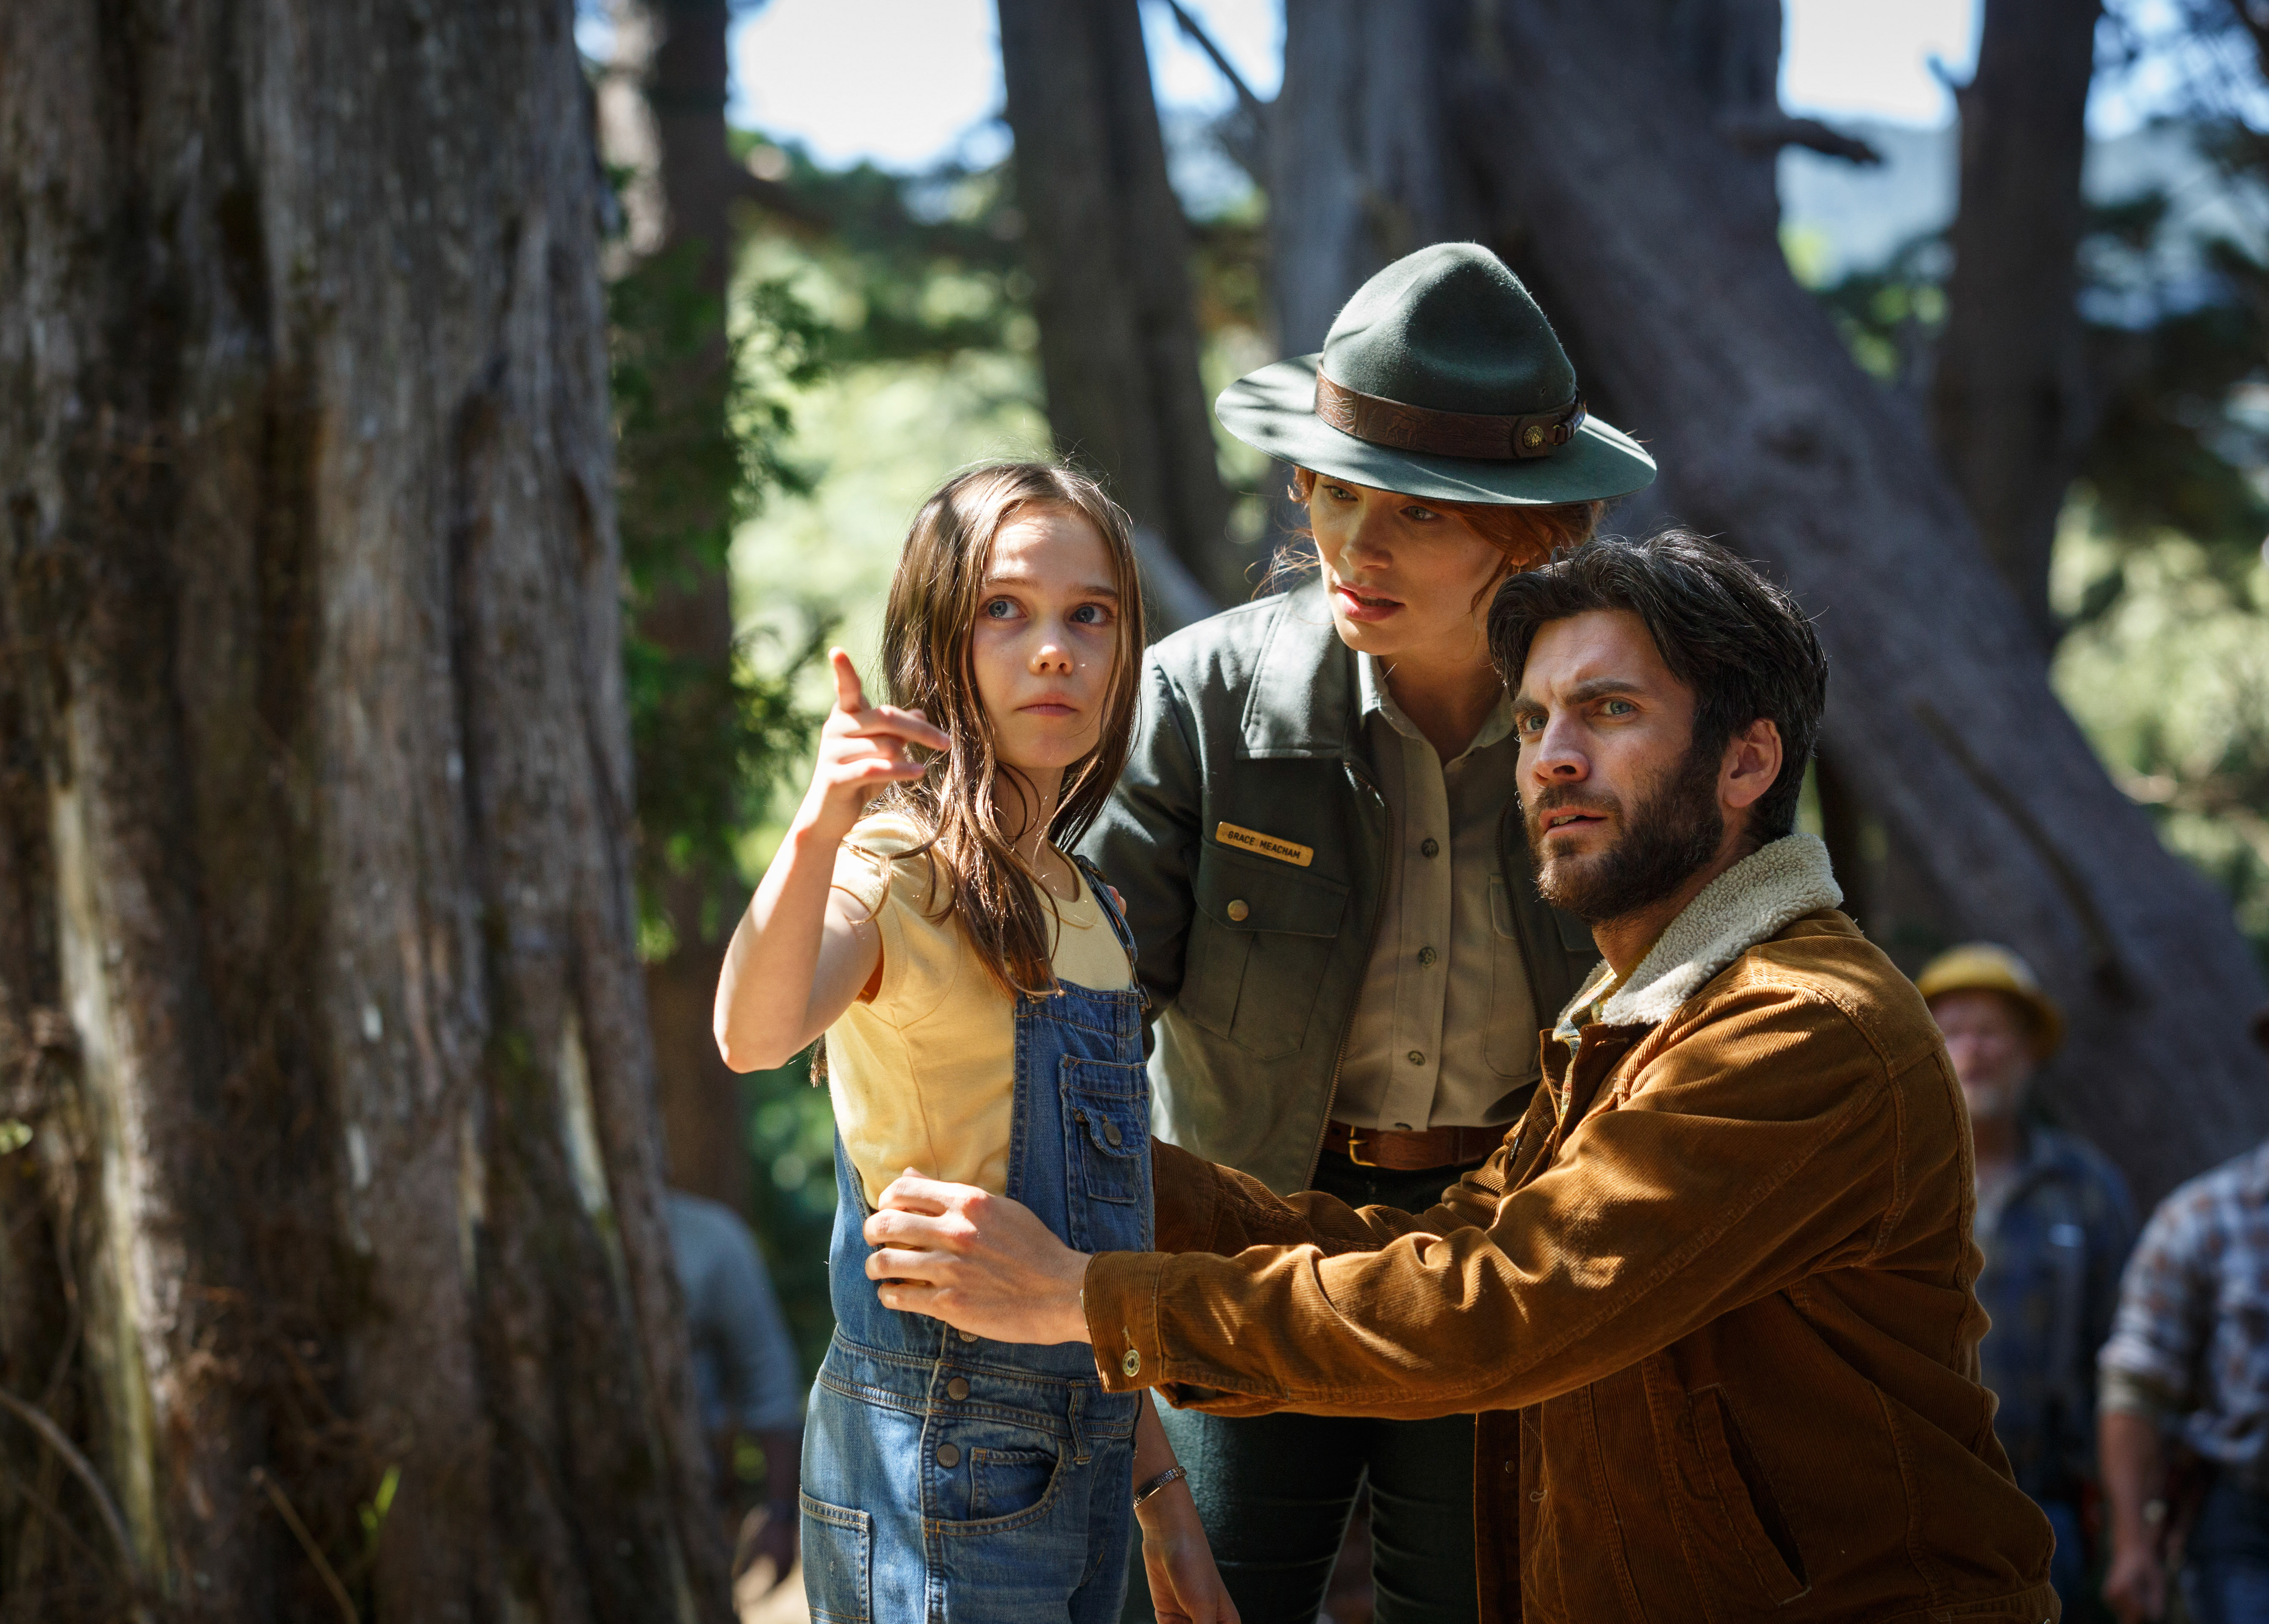 Wes Bentley Talks About His Role as Jack in Pete's Dragon